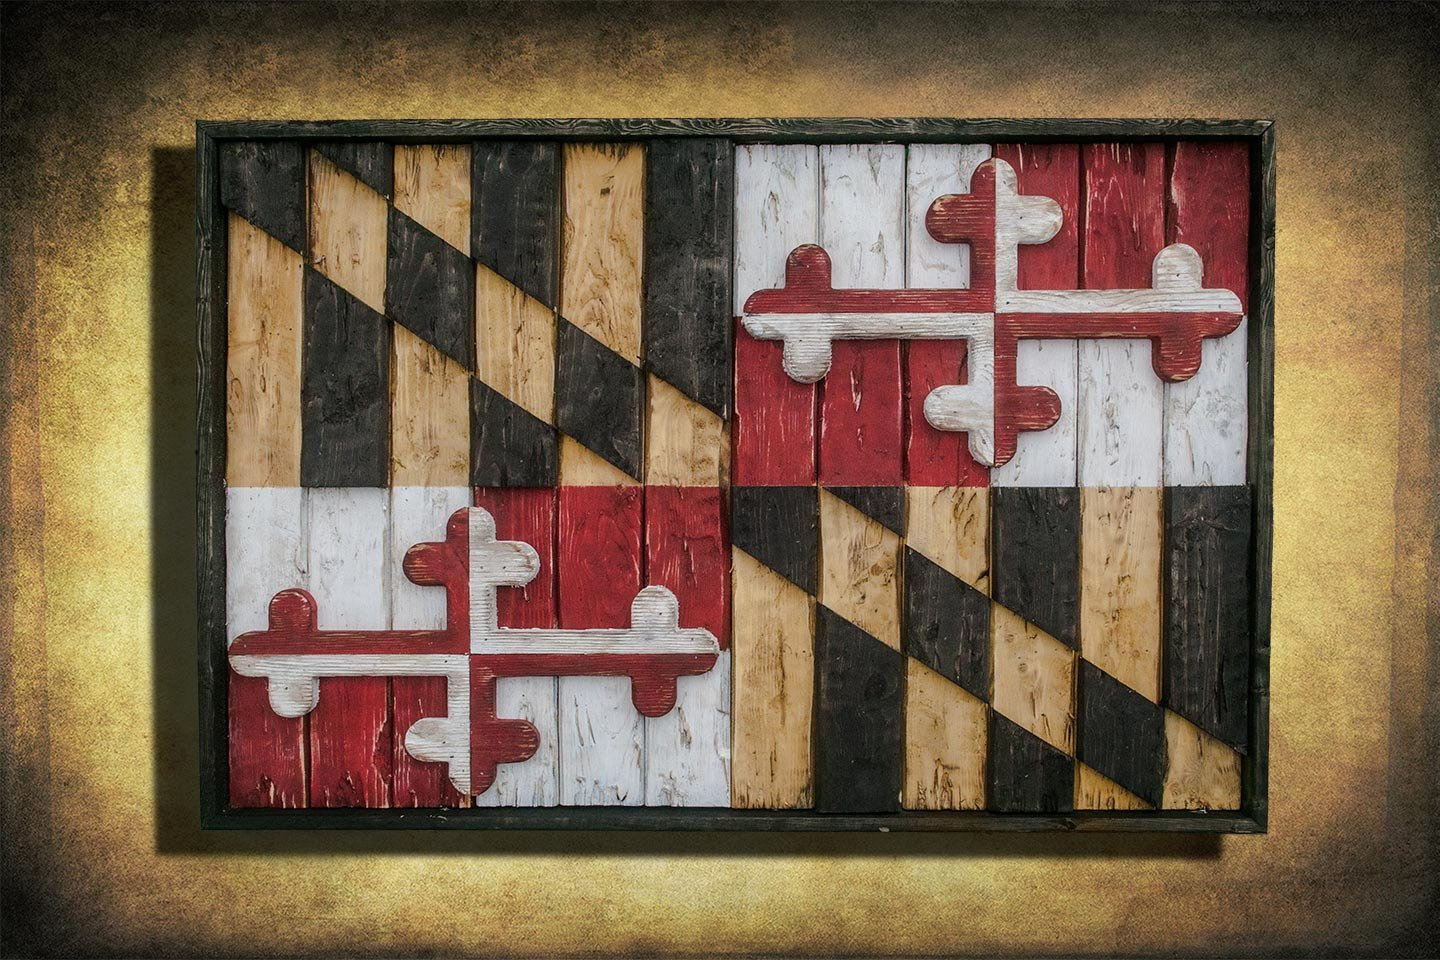 Maryland Flag, Limited Edition, Weathered Wood One of a kind , Wooden, vintage, art, distressed, weathered, recycled, Baltimore, red, yellow by Chris Knight Creations